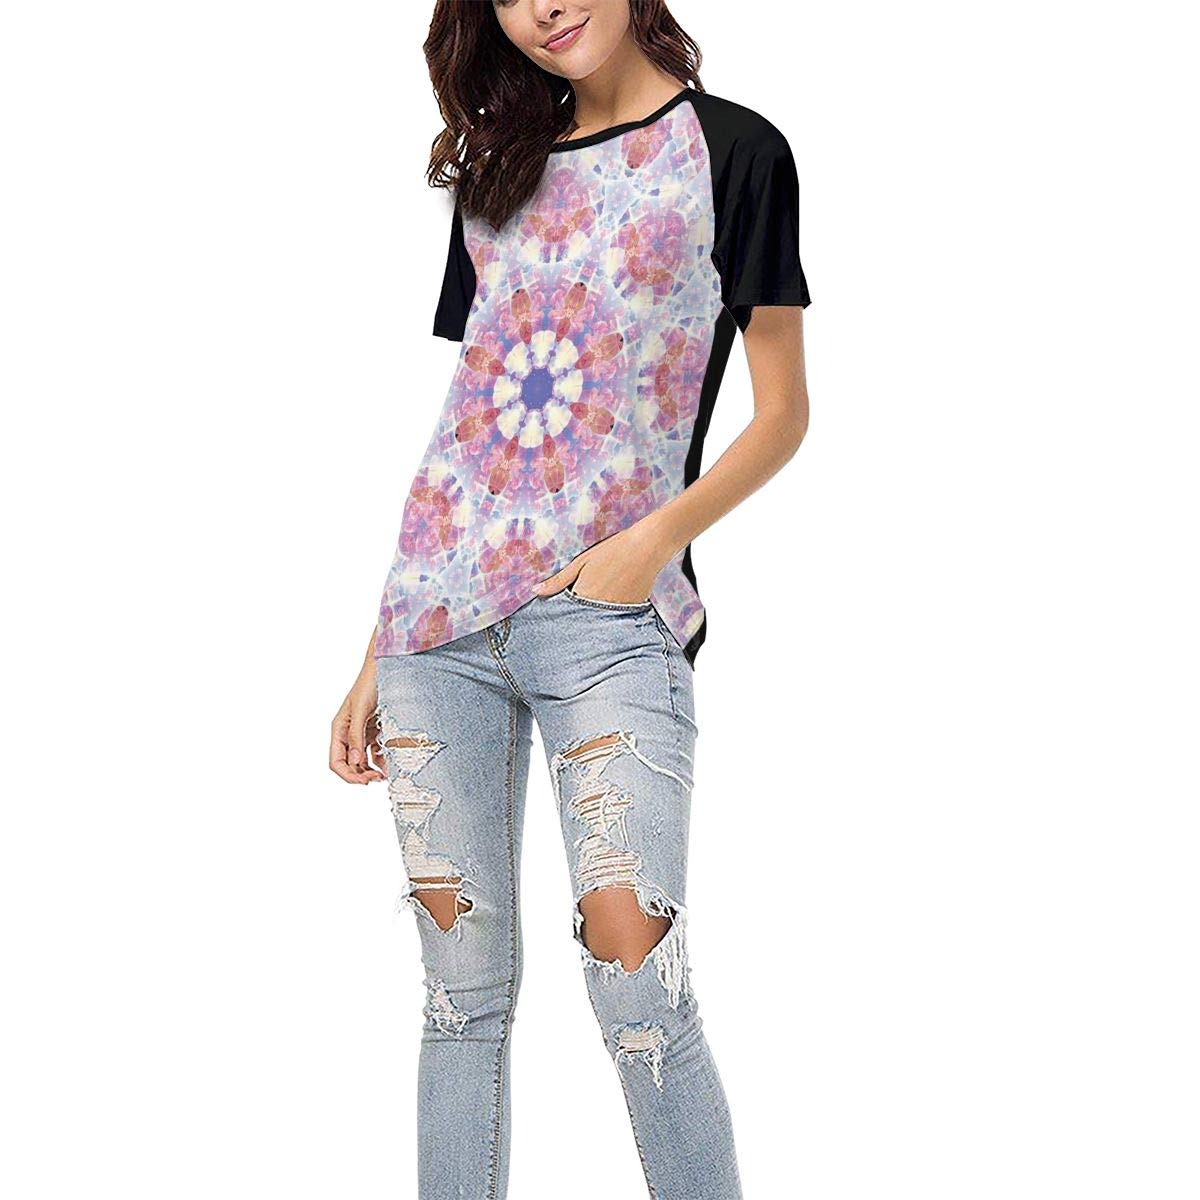 Pink Kaleidoscope Casual Raglan Tee Baseball Tshirts Tops Blouse Laki-co Womens Summer Short Sleeve